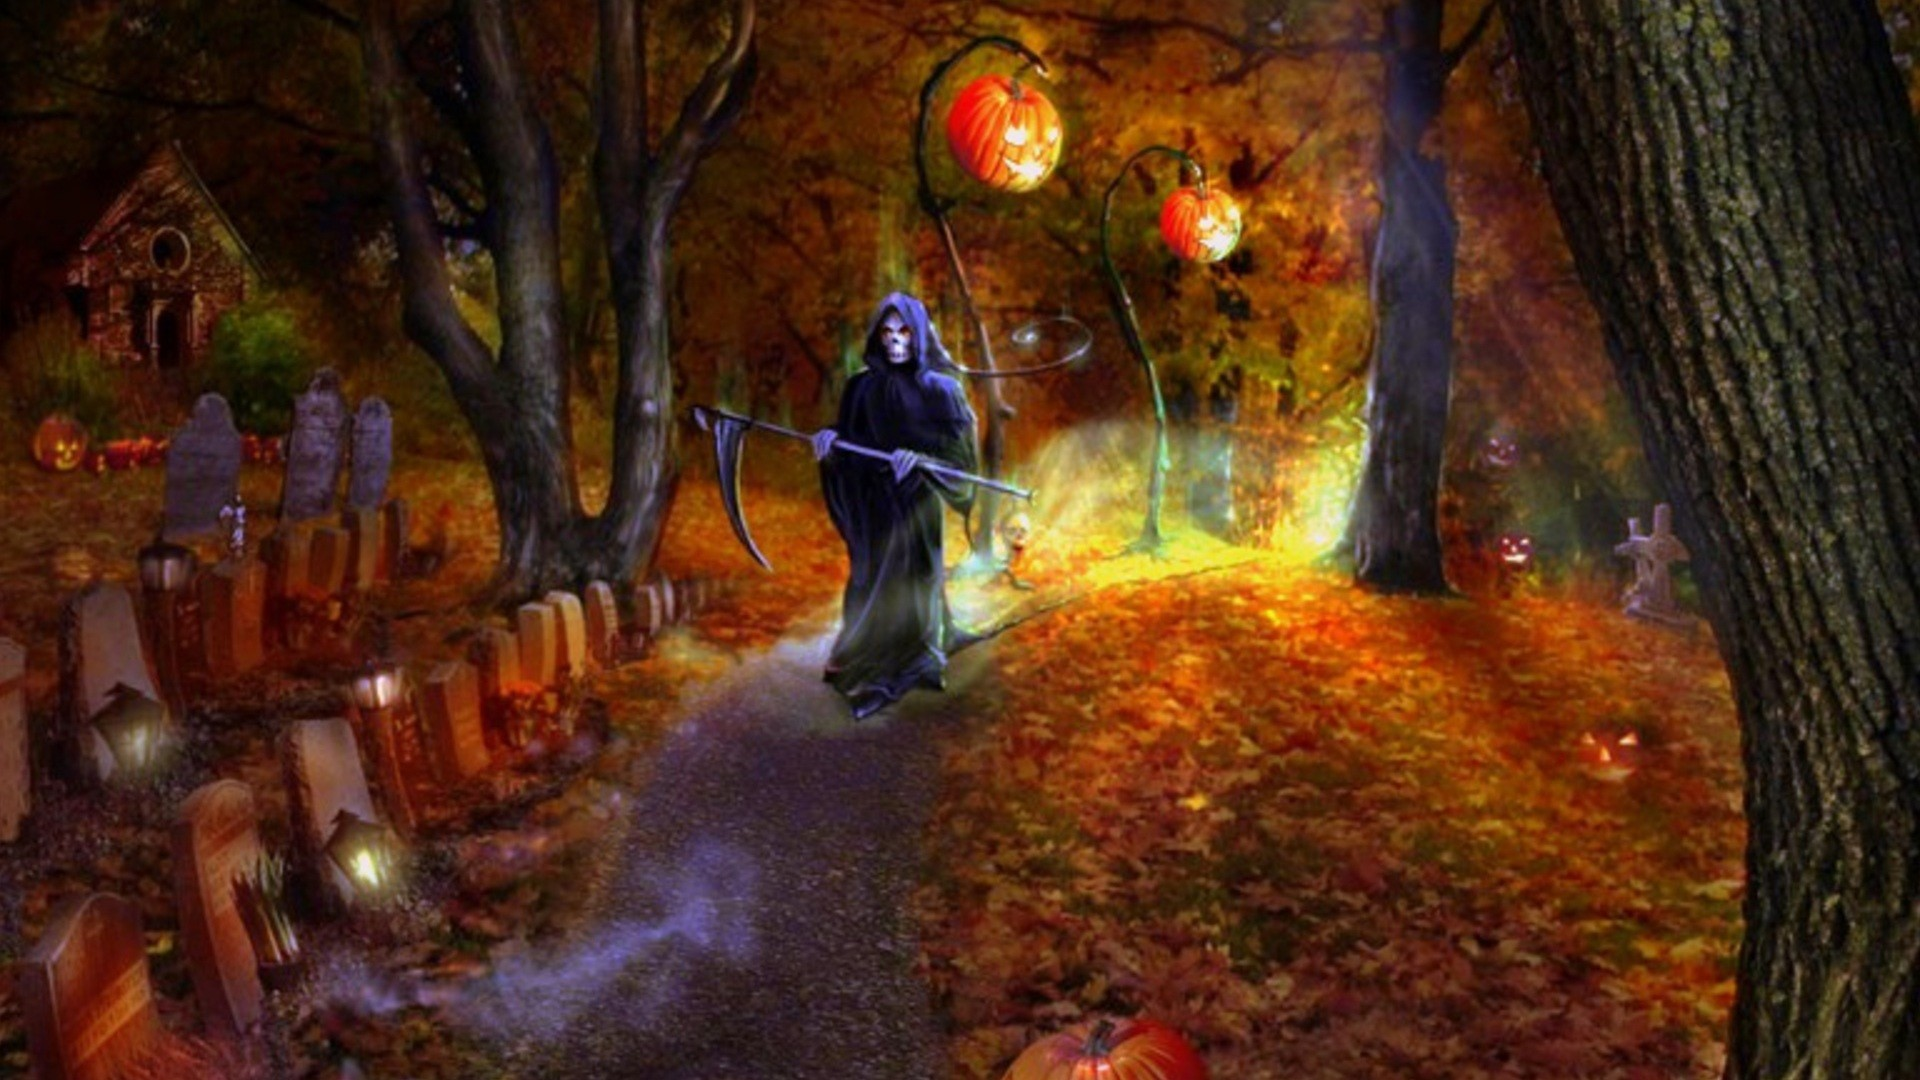 Scary Halloween Wallpapers and Screensavers (58+ images)